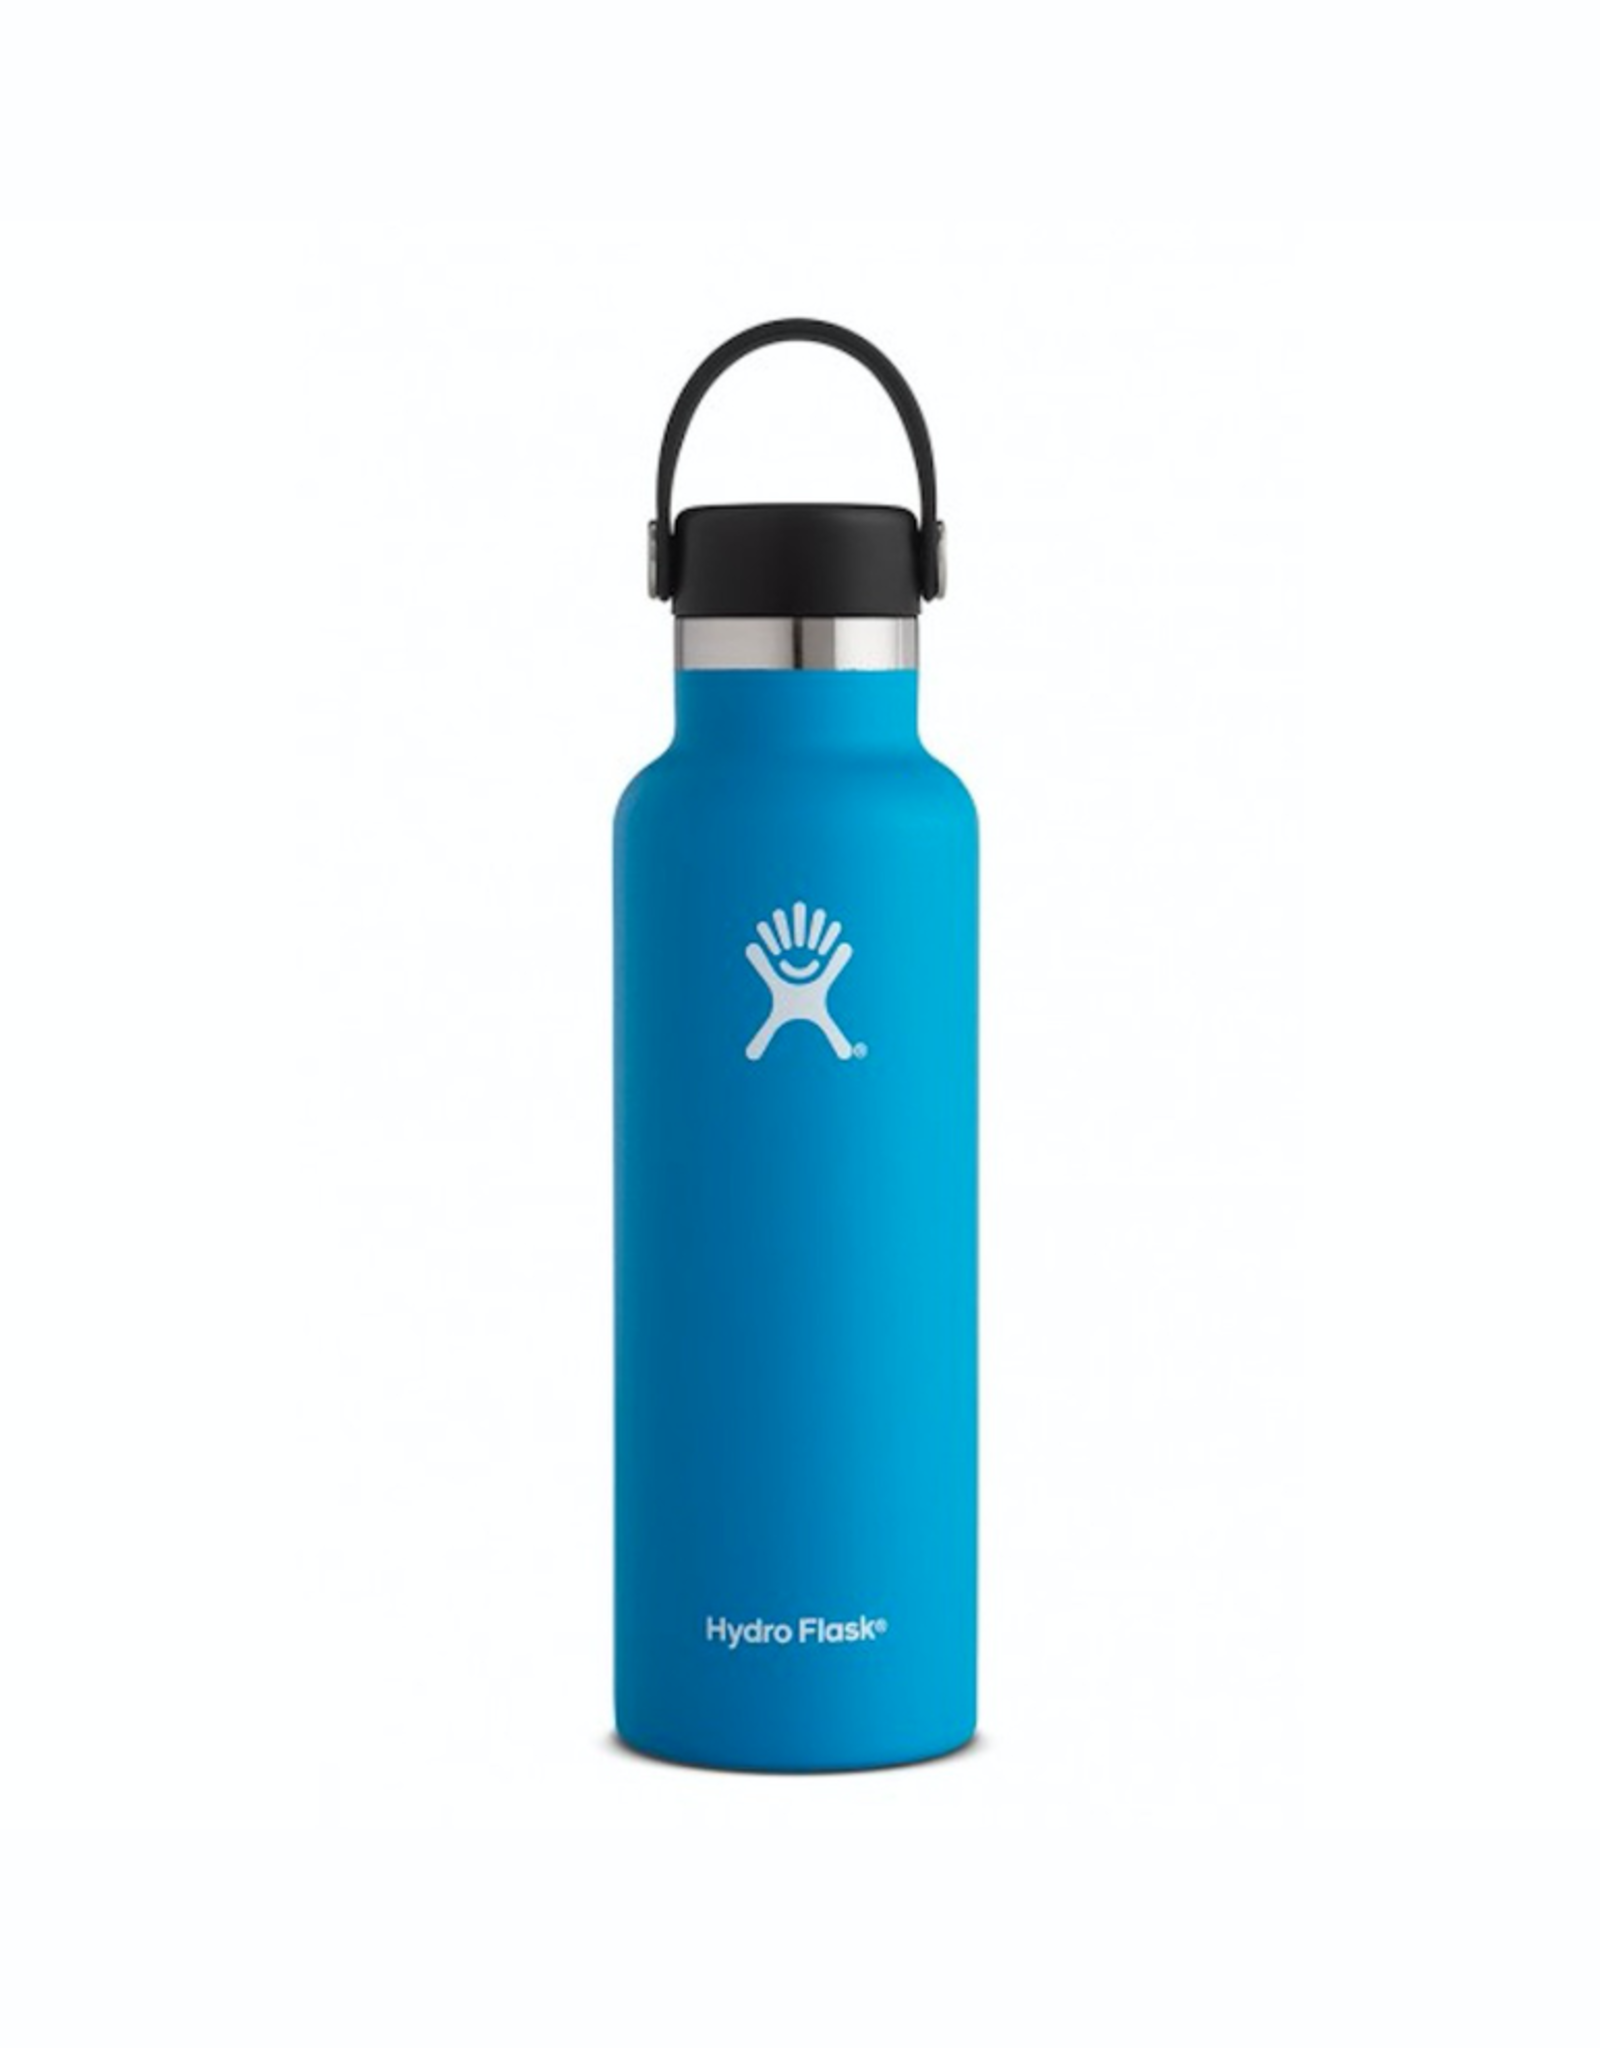 Hydro Flask 21 oz Standard Mouth in Pacific